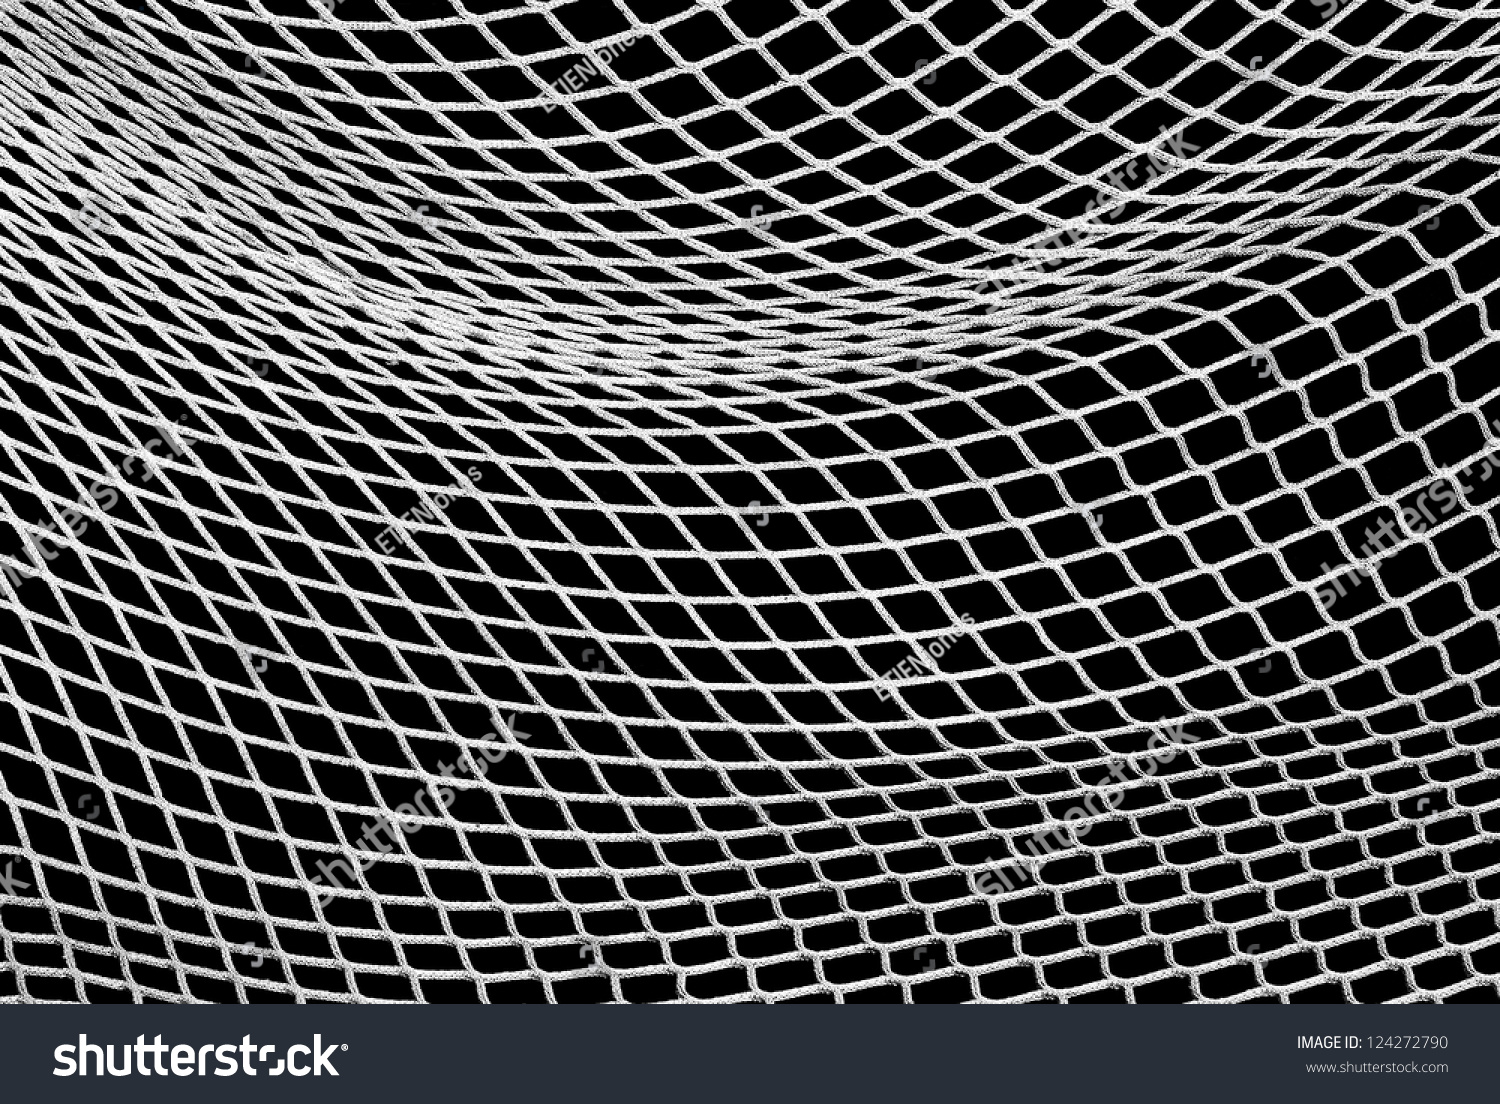 Soccer Net Black White Design Element Stock Photo